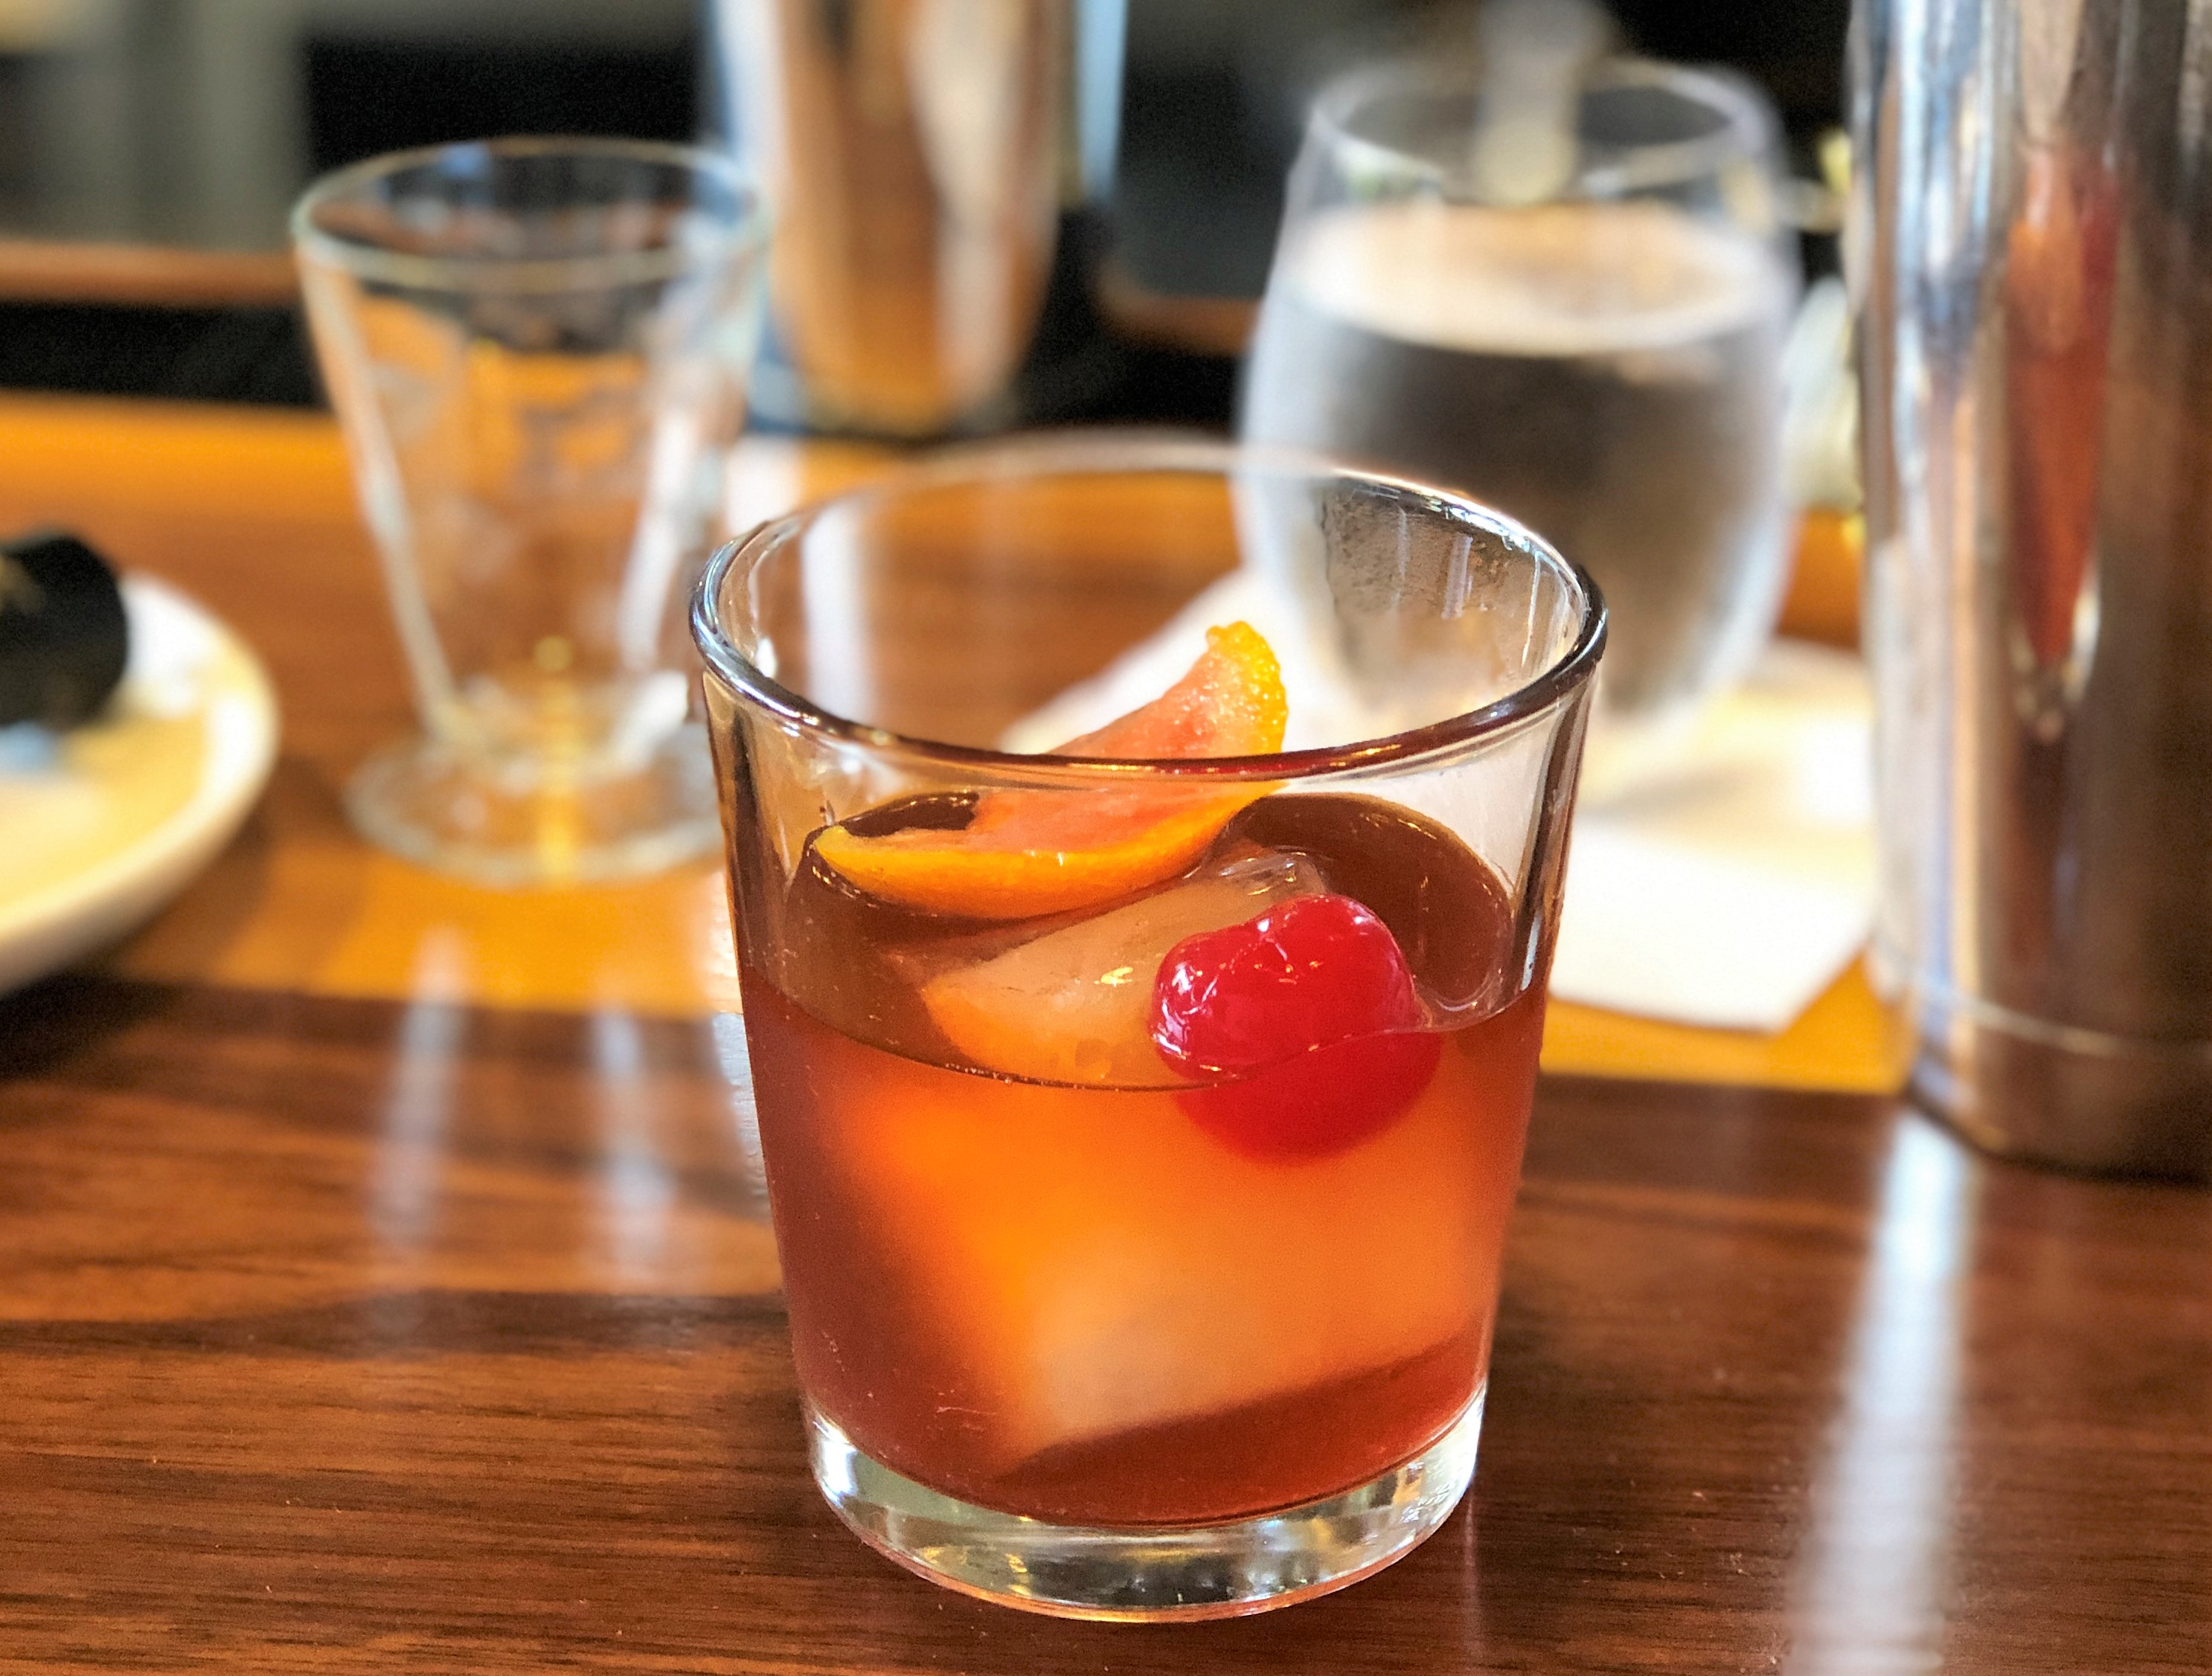 If You Think You Know How to Make a Wisconsin Old-Fashioned, You're Wrong